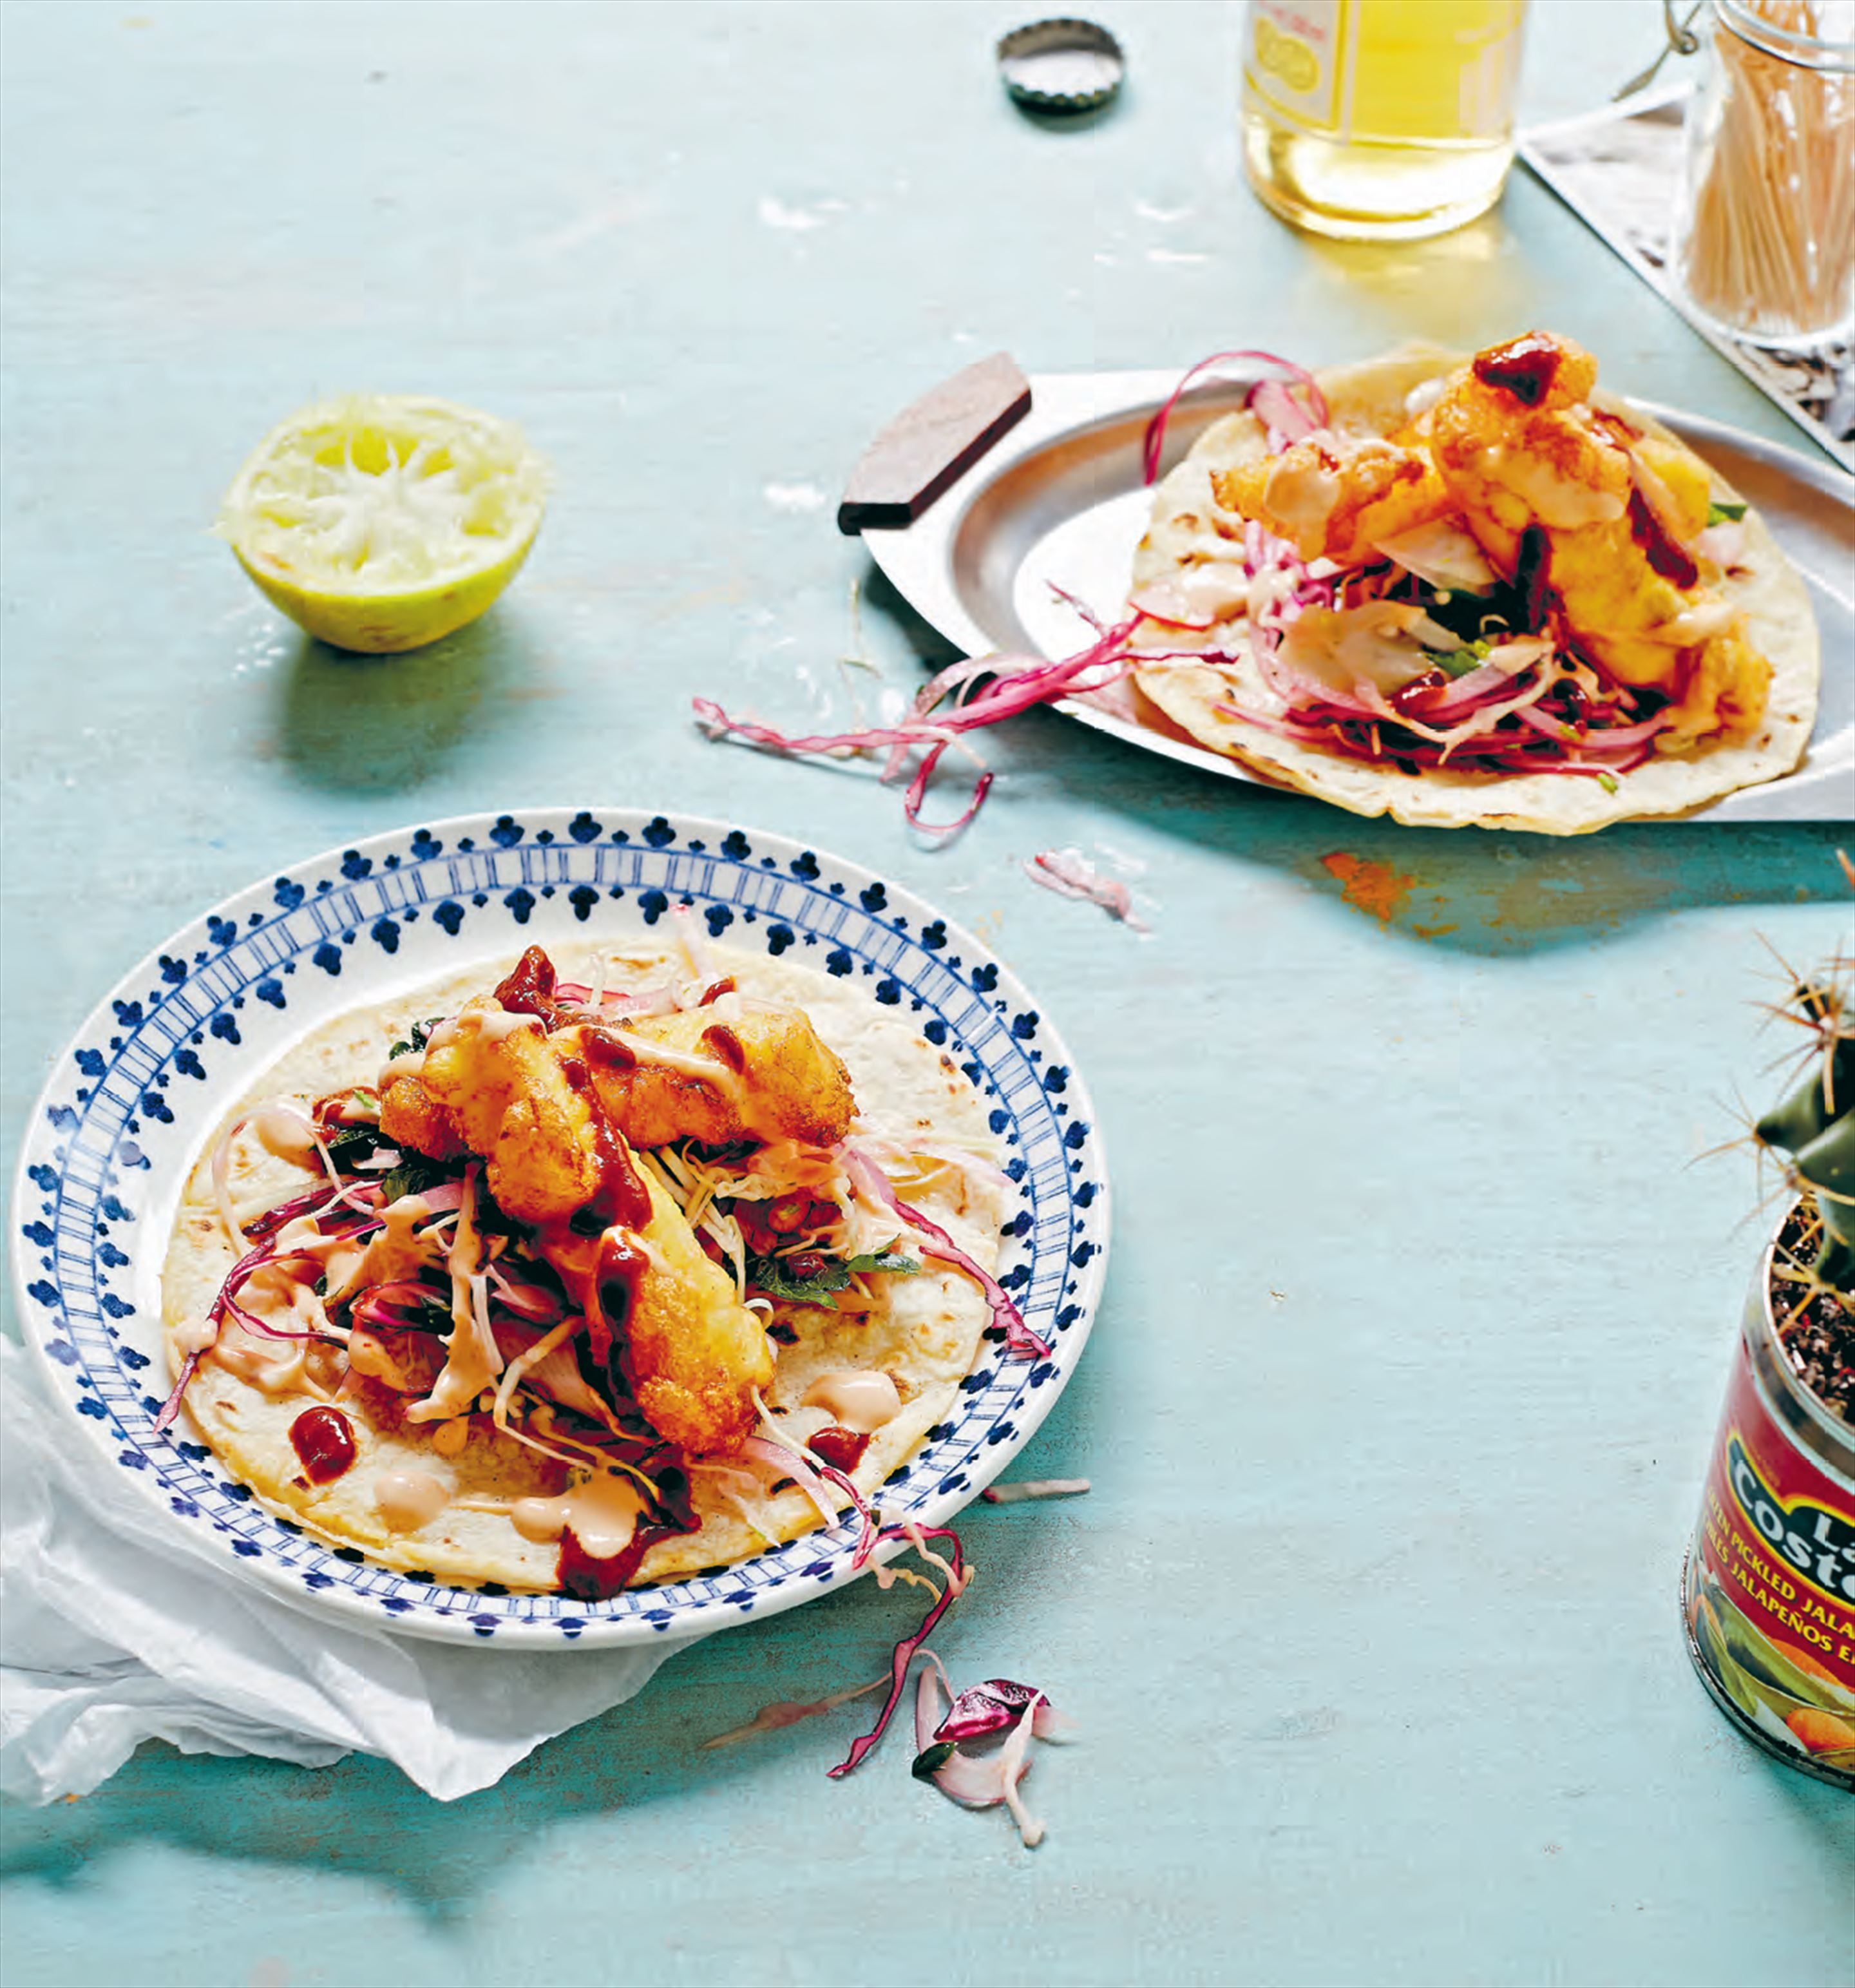 Mr Wilson's fish tacos with slaw & two sauces